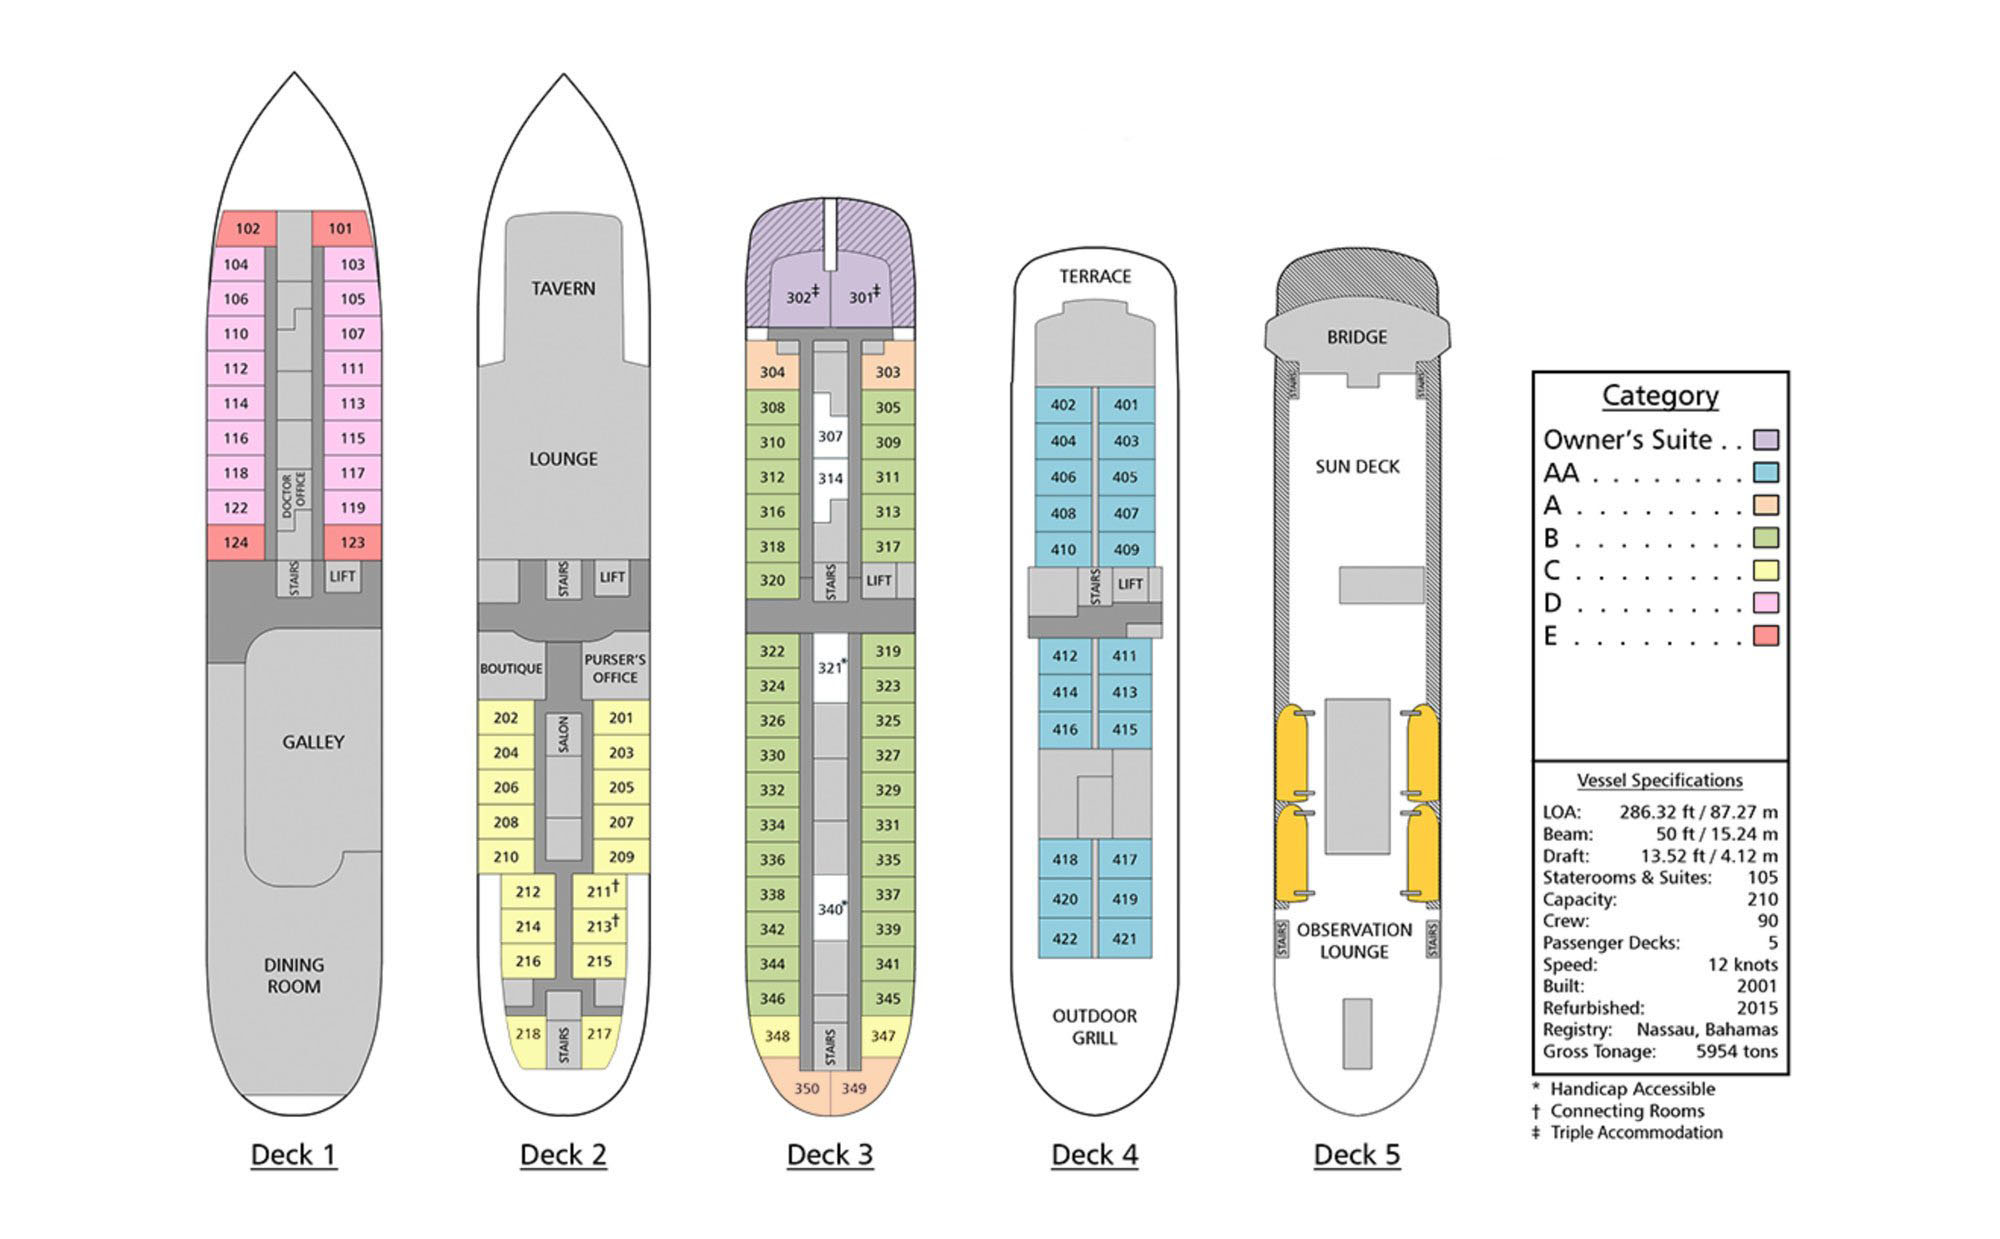 Cabin layout for Victory I & II